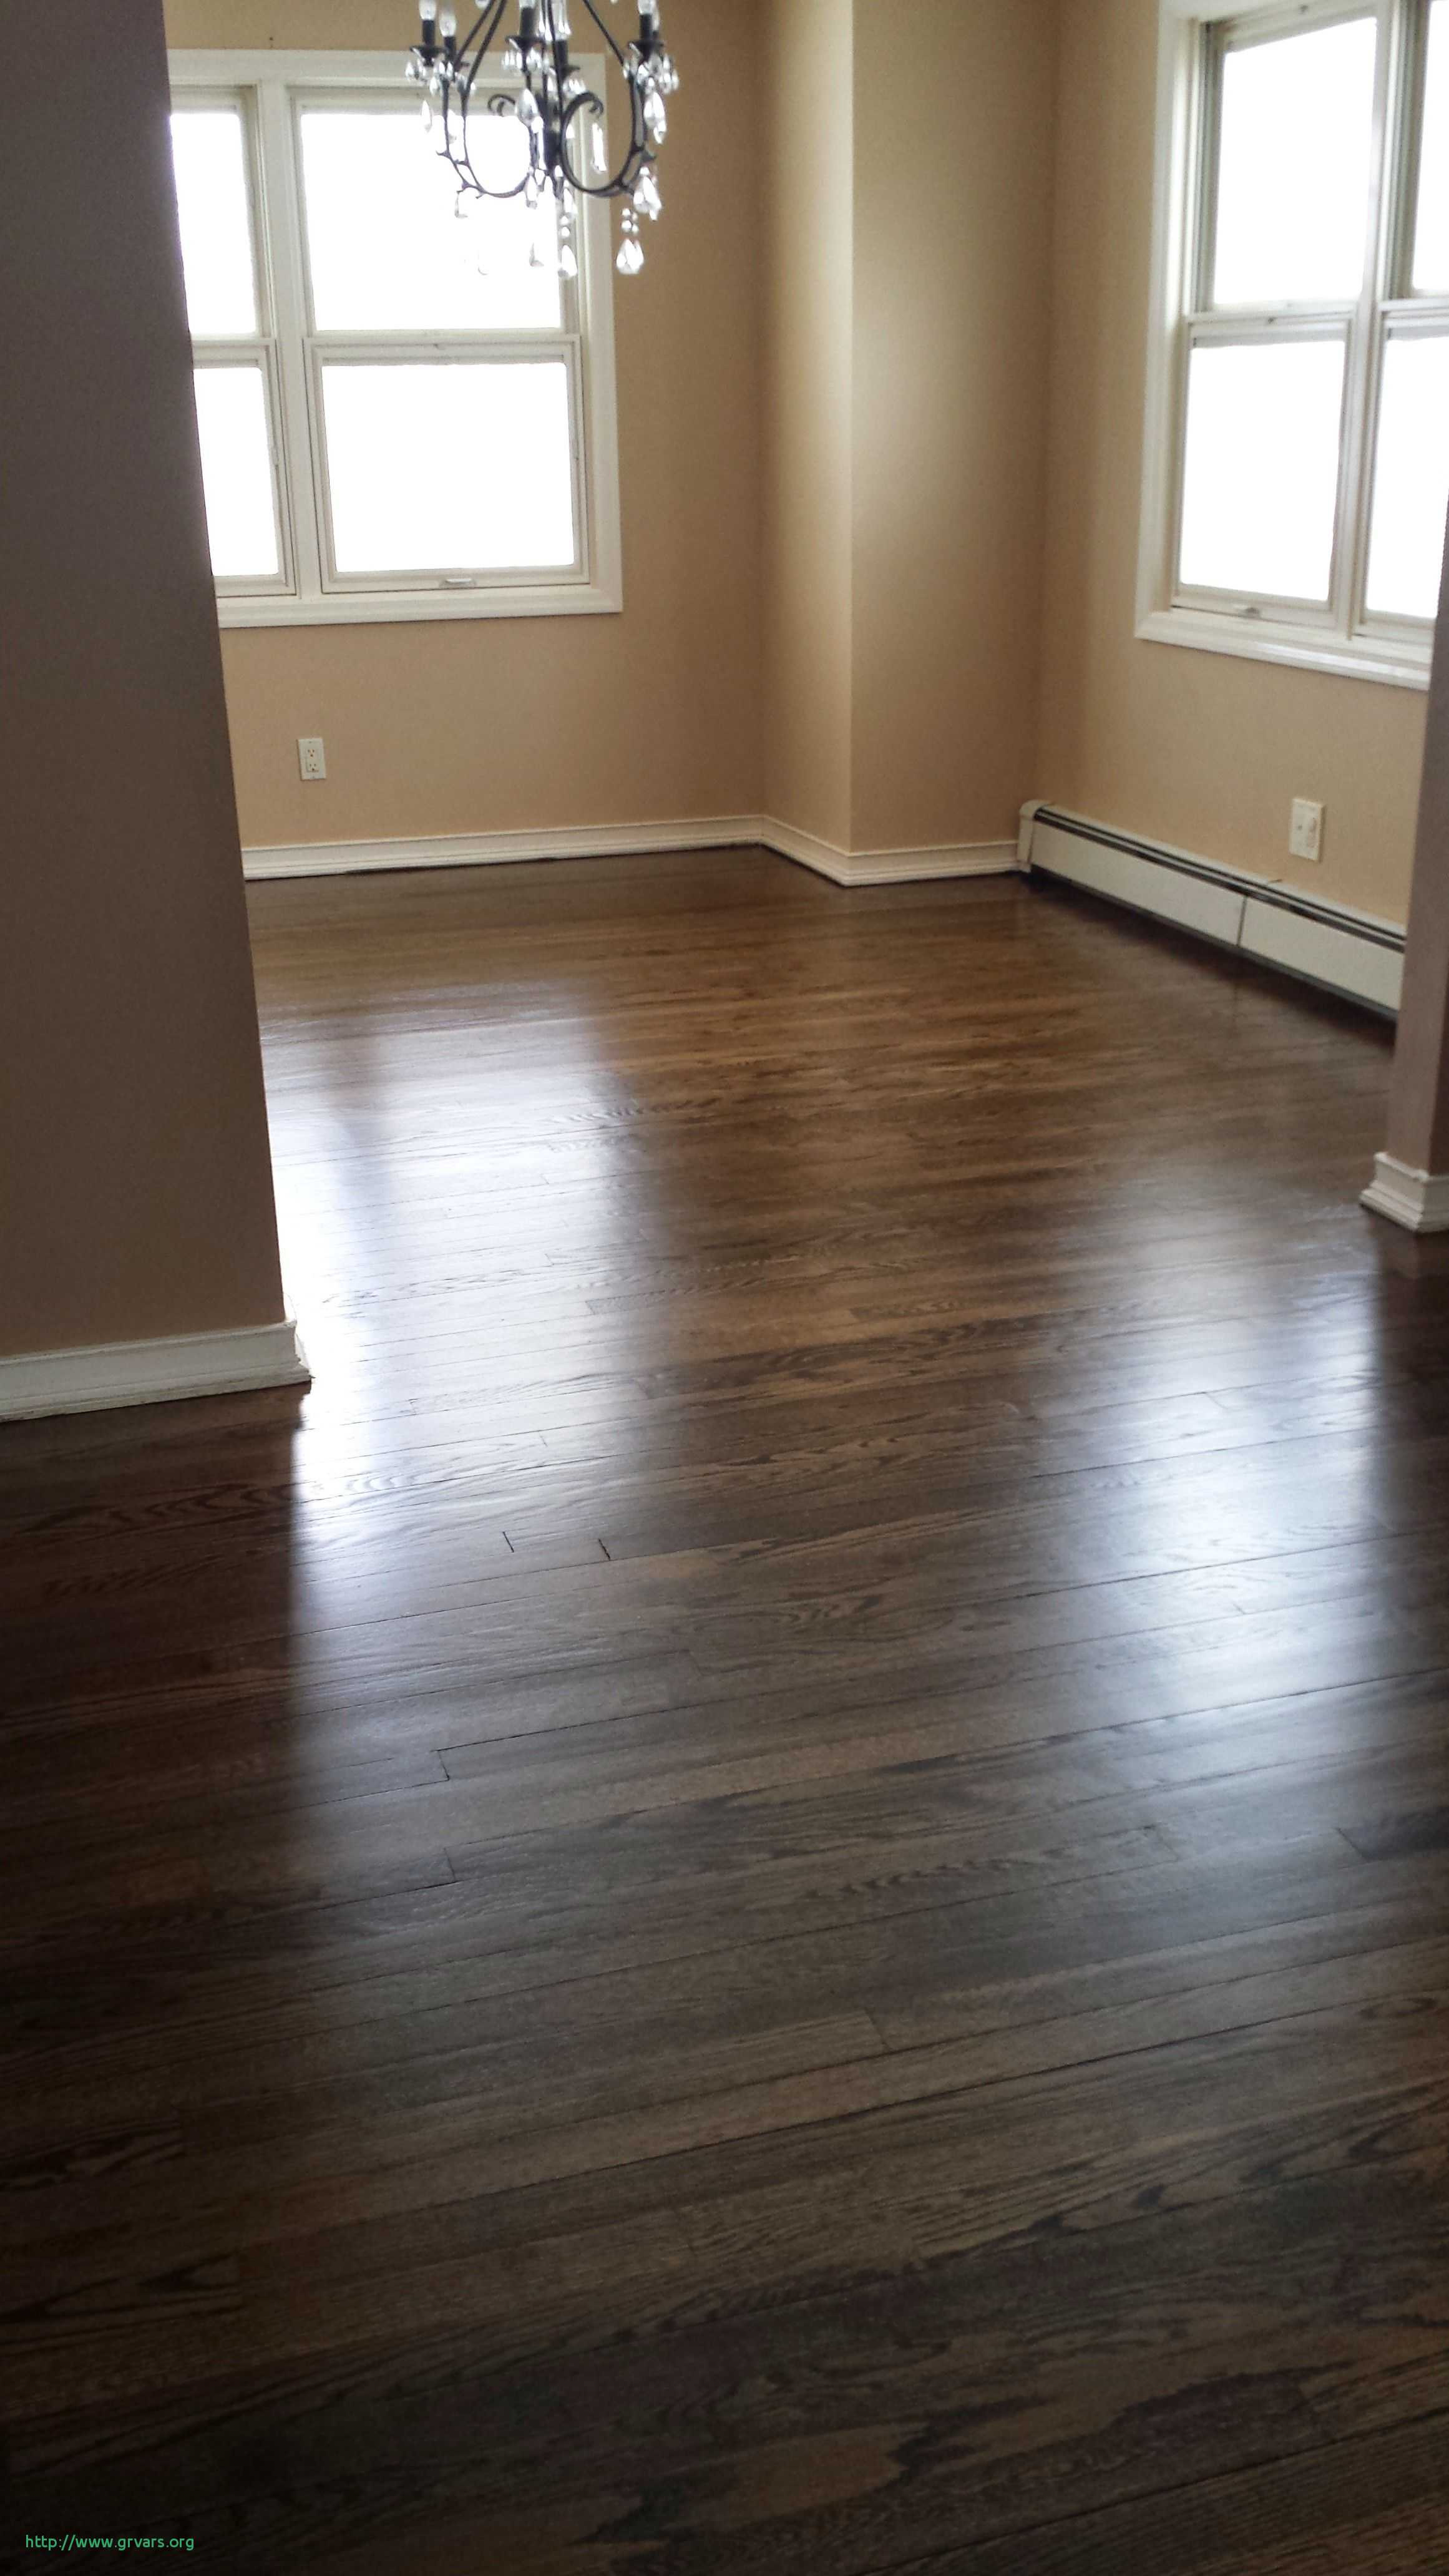 2 1 4 maple hardwood flooring of how to sand and stain wood floors impressionnant 2 1 4 maple sand throughout how to sand and stain wood floors charmant amusing refinishingod floors diy network refinish parquet without